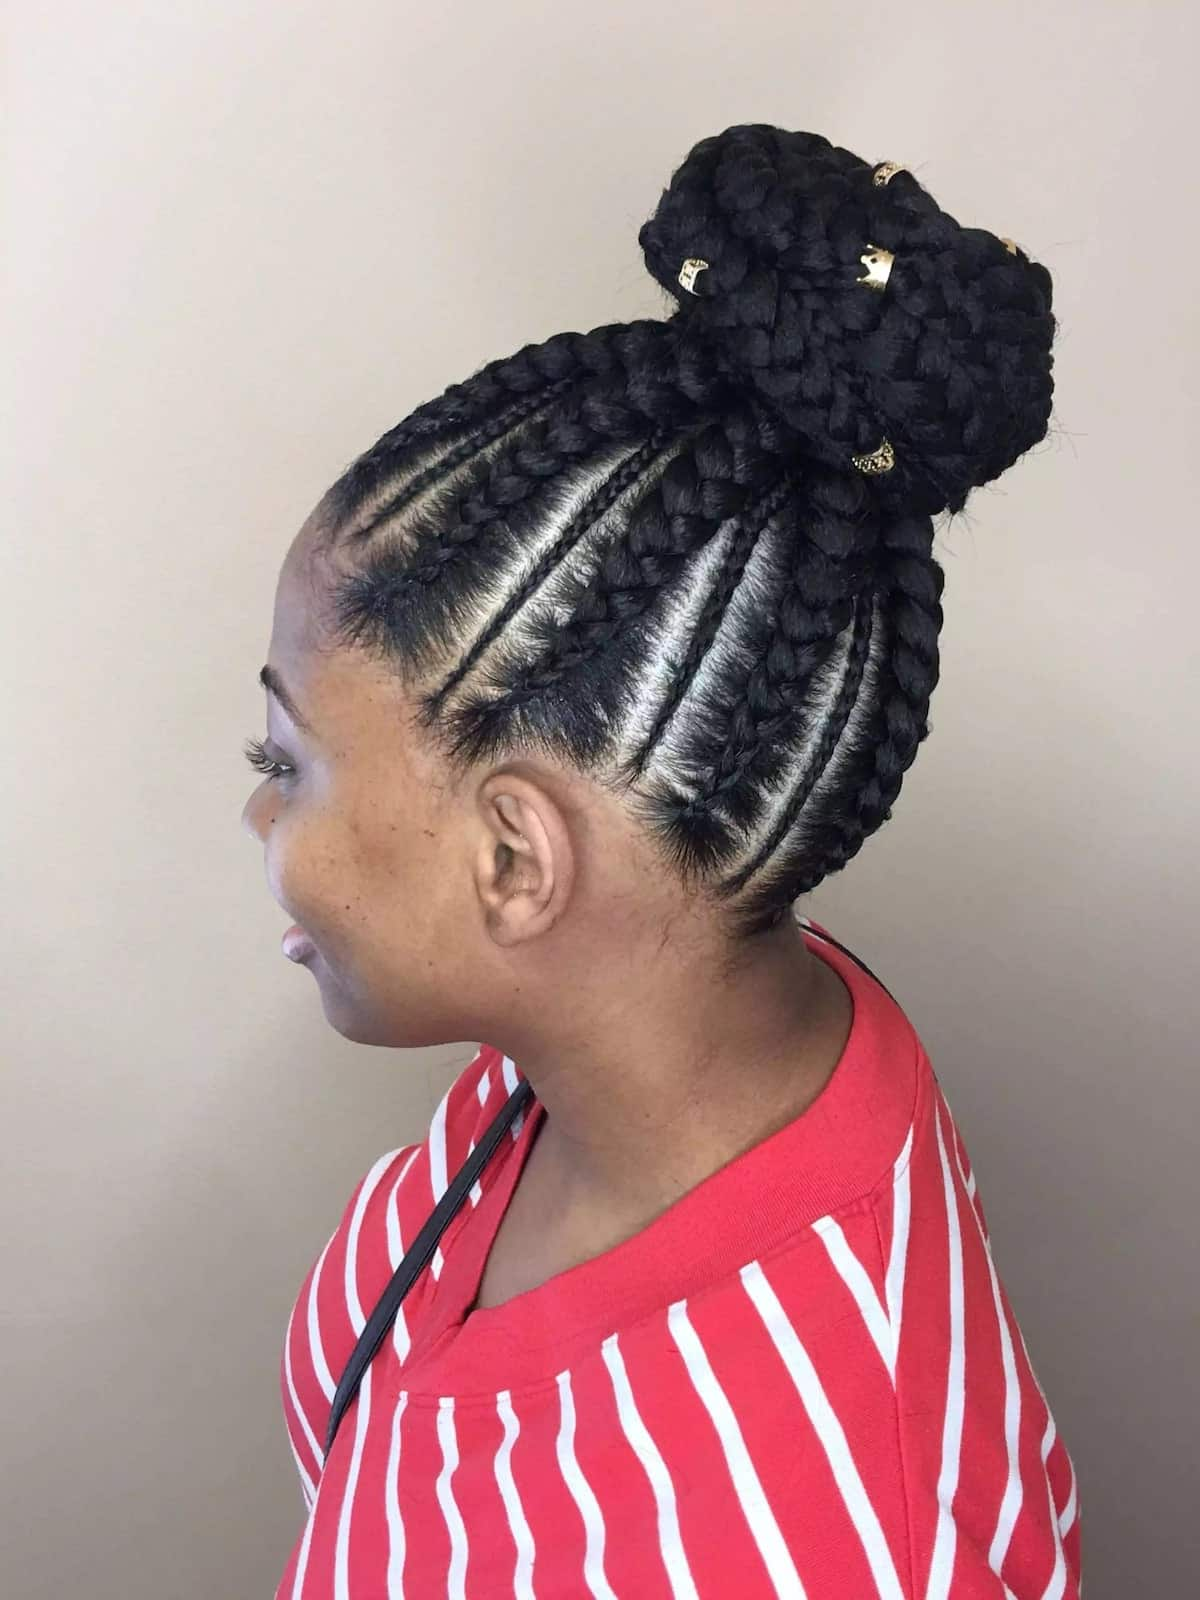 20 Best Cornrow Braid Hairstyles For Black Women With An Updo